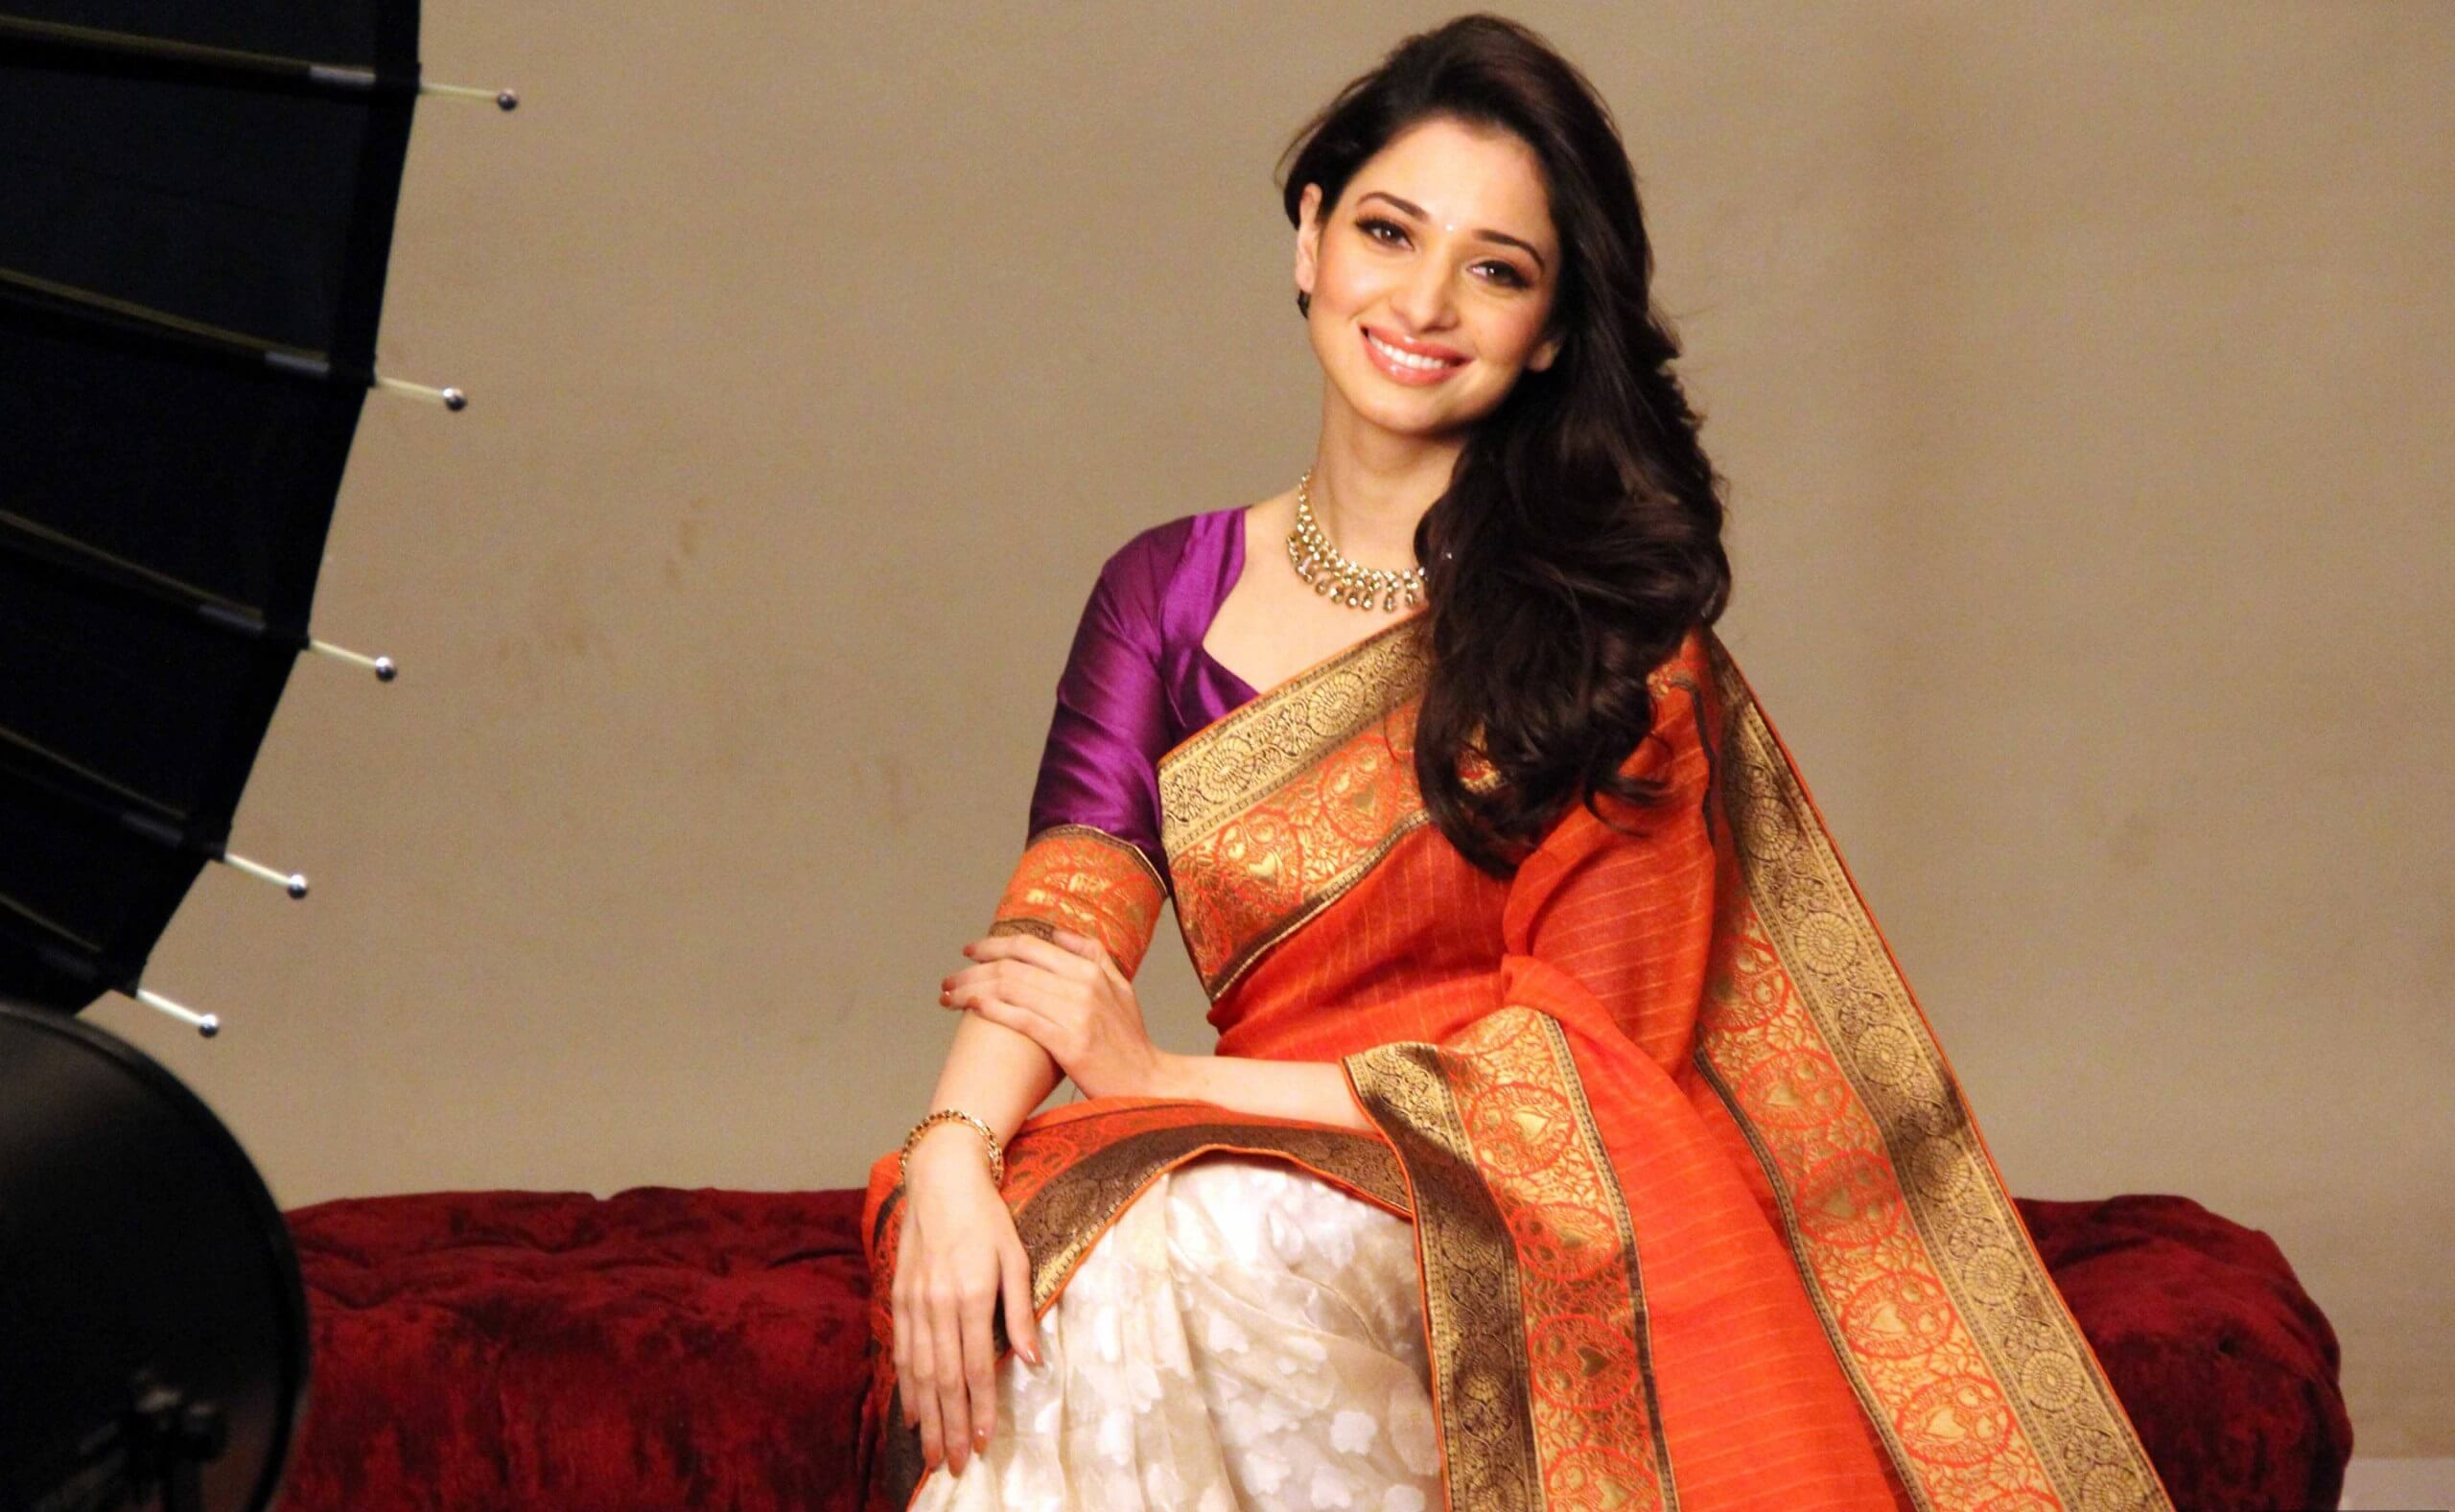 Tamannaah Bhatia Photos(images), Height, Biography, Movies, Date Of Birth, House, Details, Marriage, Boyfriend, Net Worth, Education, Instagram, Facebook, Twitter, Wiki, Imdb, Youtube (67)